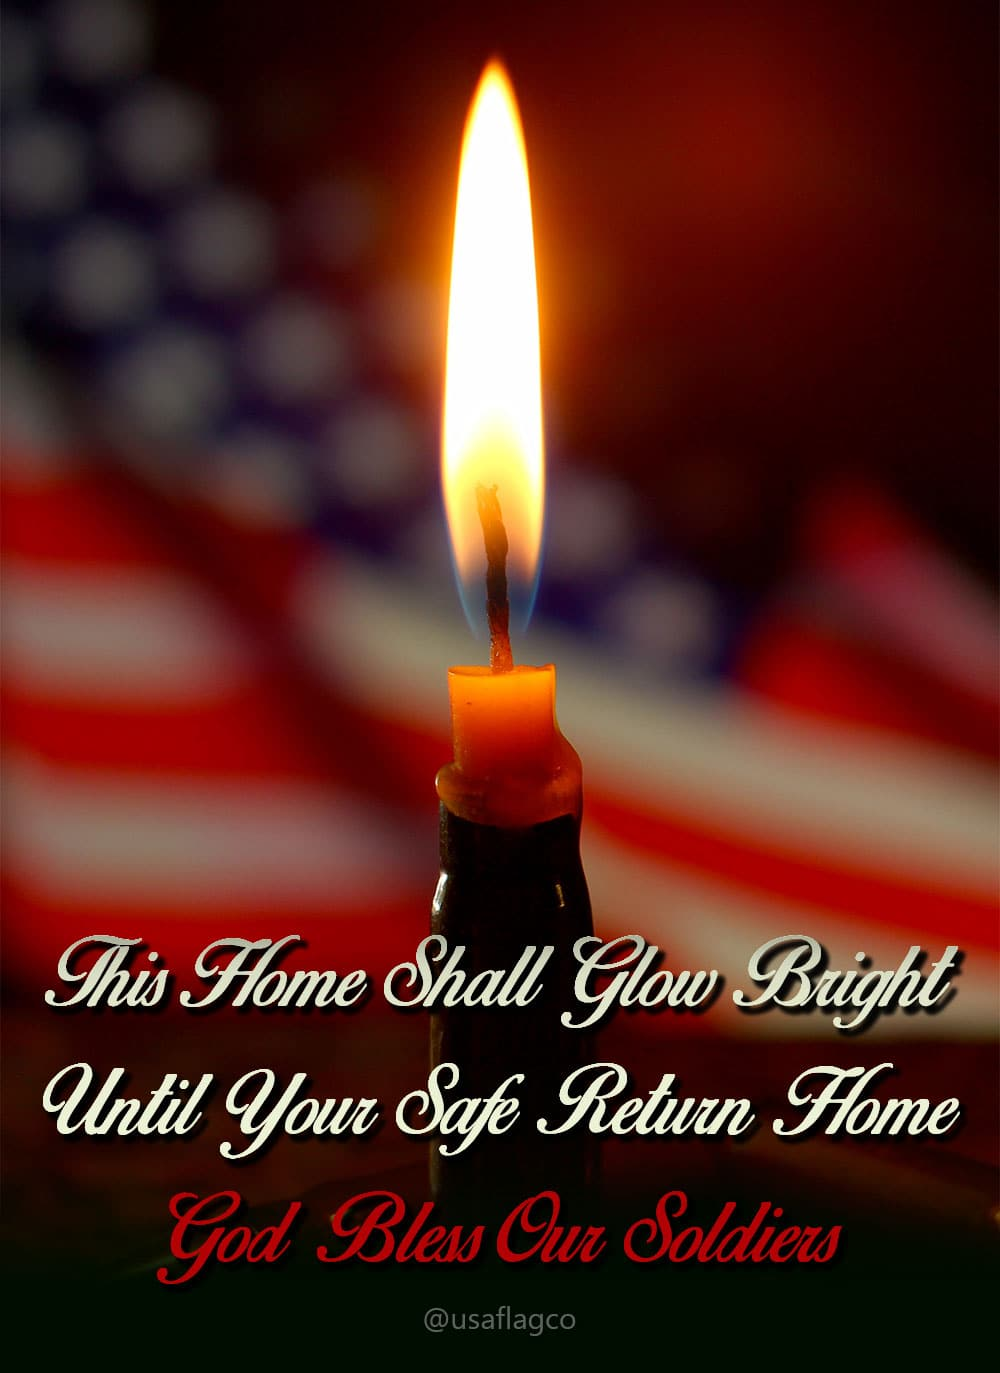 This Home Shall Glow Bright Until Your Safe Return Home... God Bless Our Soldiers.